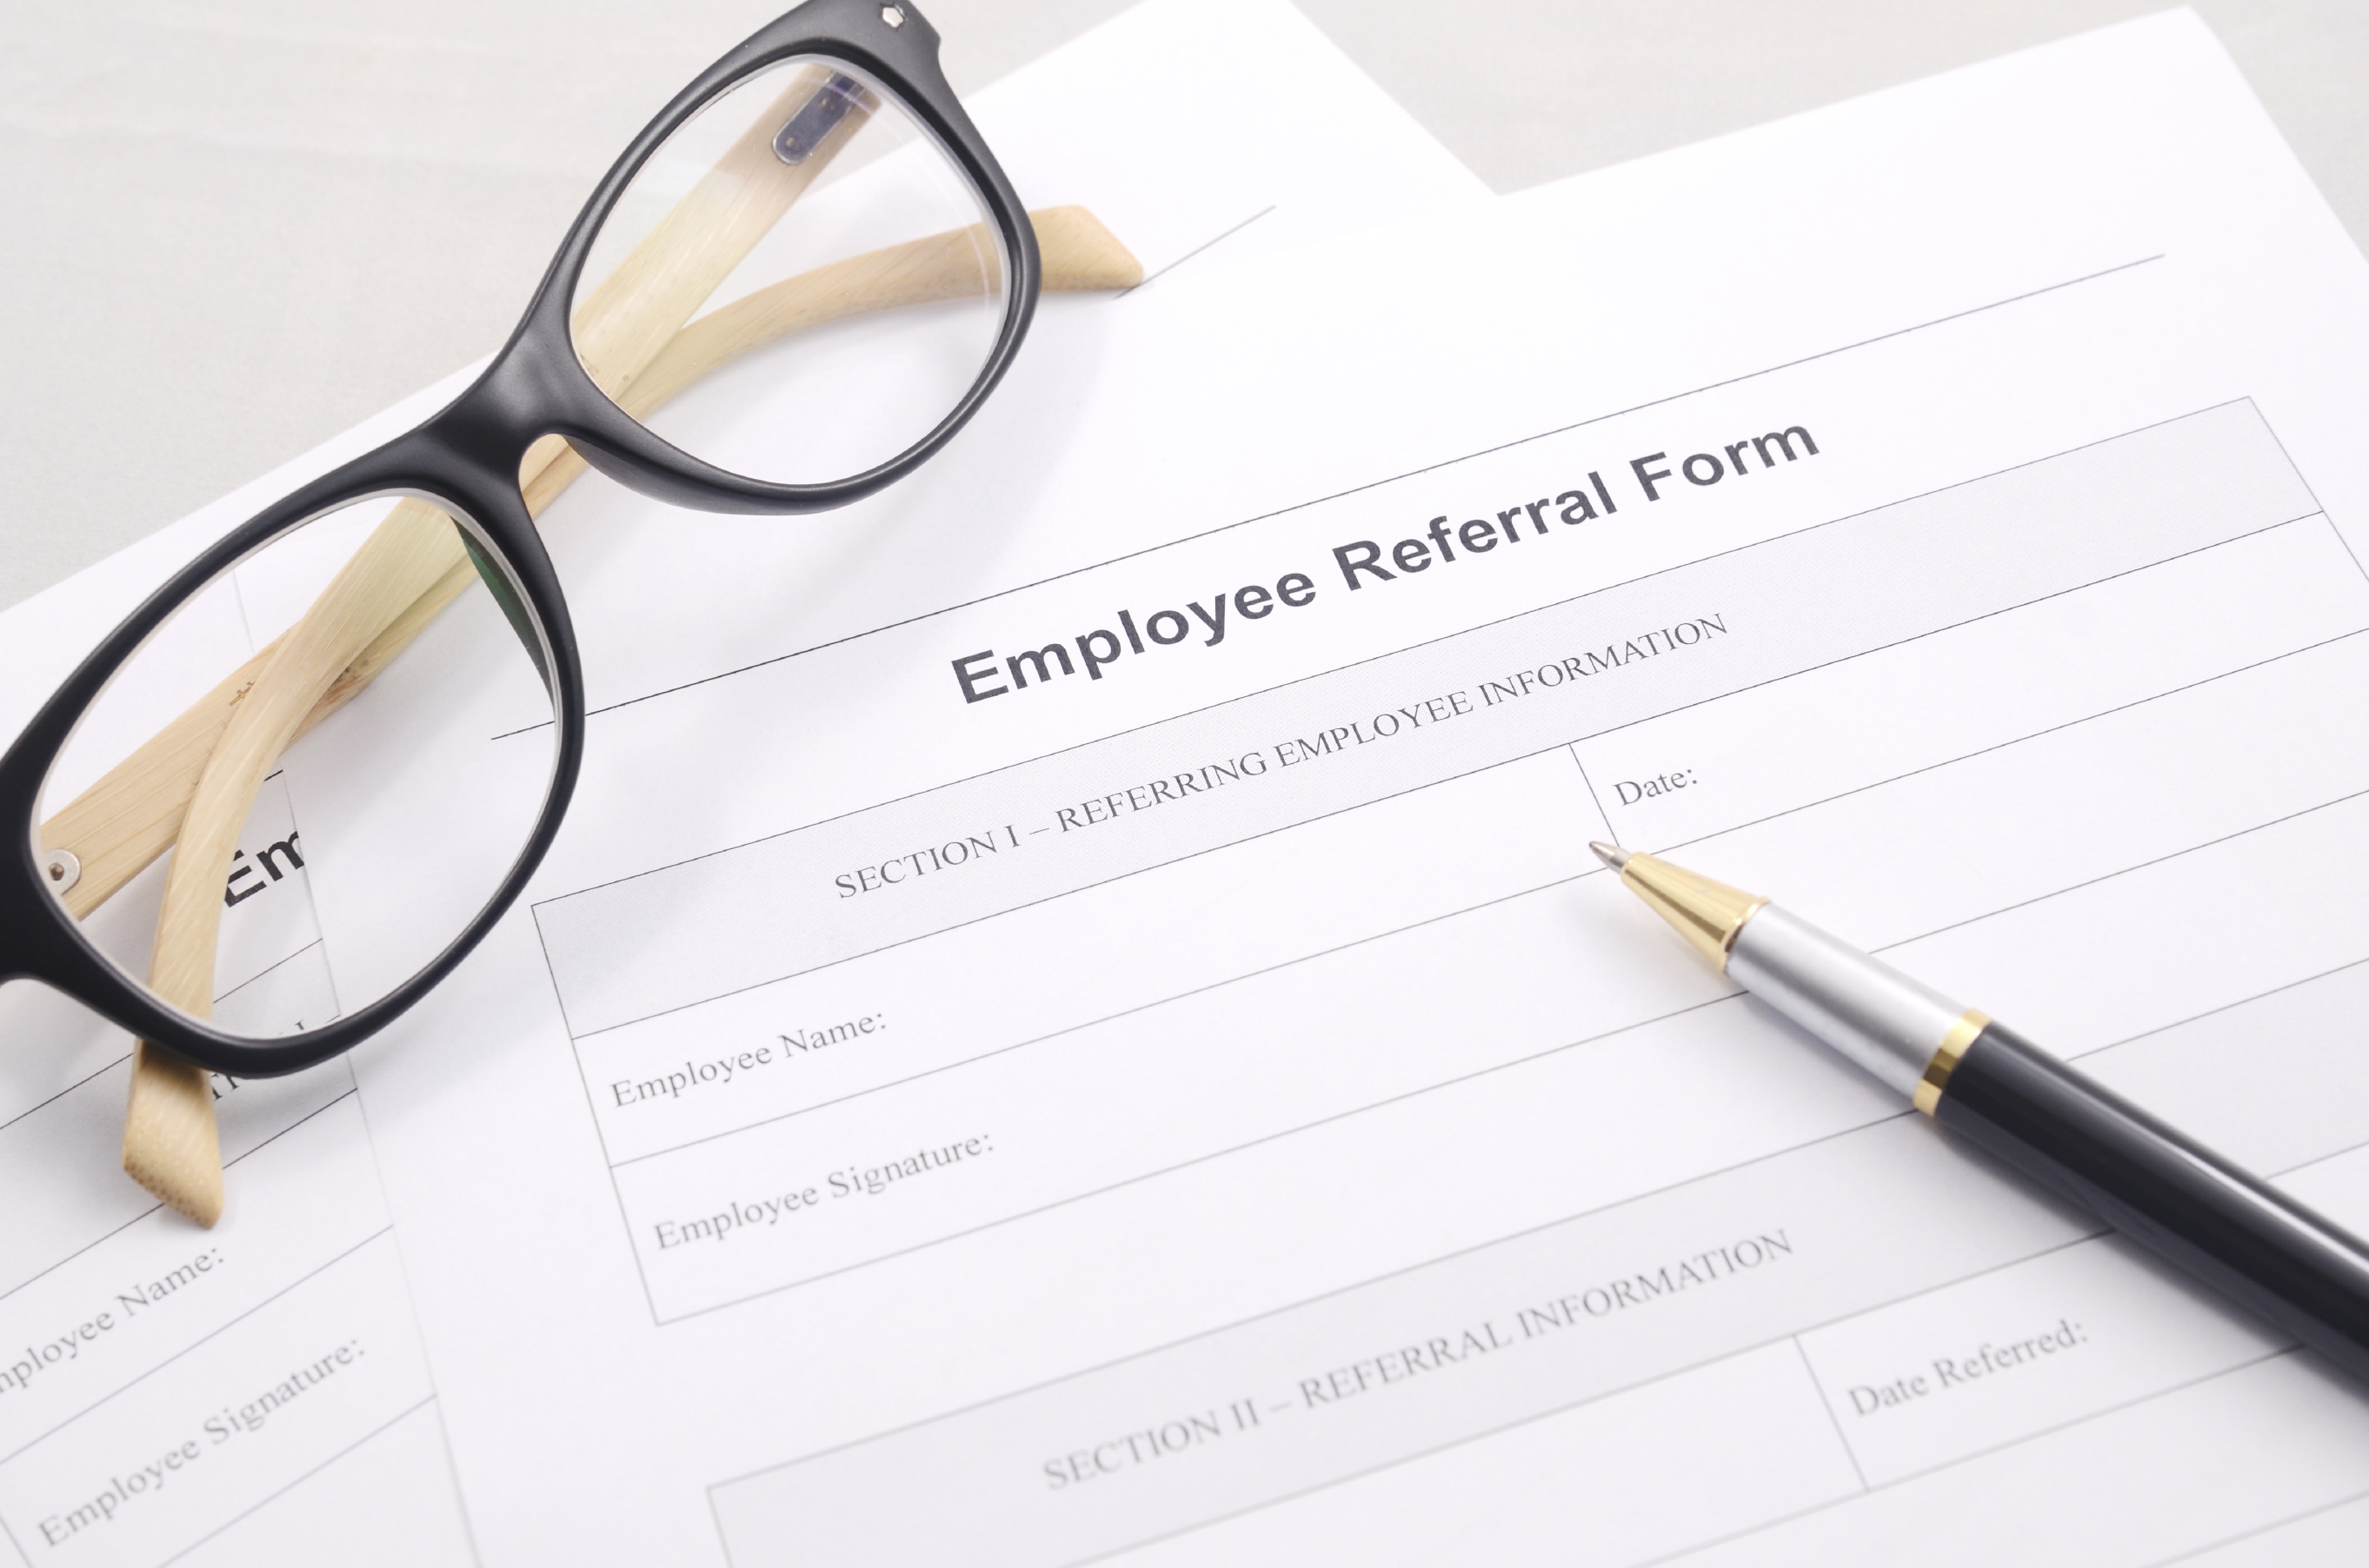 ... Employee Referral Form